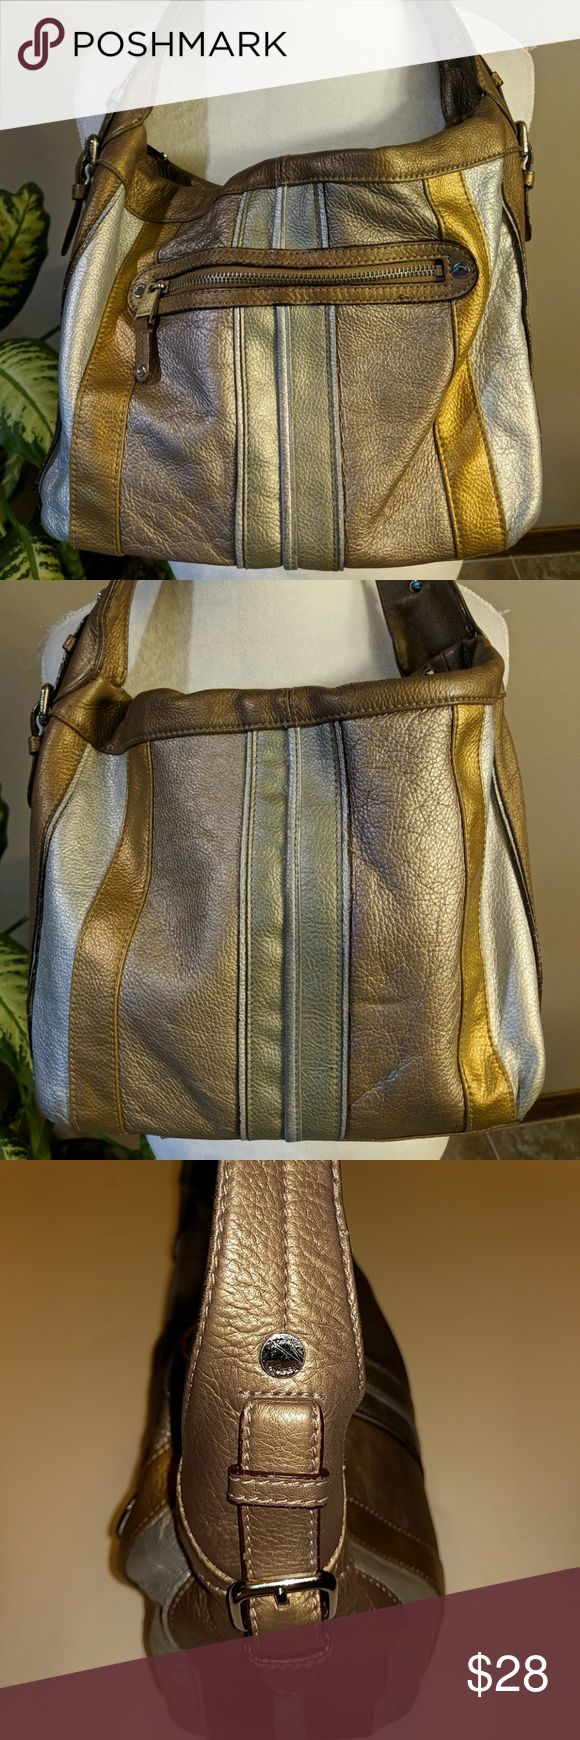 Tignanello large metallic shoulder bag Tignanello  metallic gold, silver, Light Beige , and a darker brown. Large purse. 12 in wide, 10 in high and 5 in wide. Great shape has a little wear on bottom corners has a zipper pocket on the outside cloth interior does have a few mark two pockets on the inside and another zipper pocket on the inside. Leather exterior. Tignanello Bags Shoulder Bags